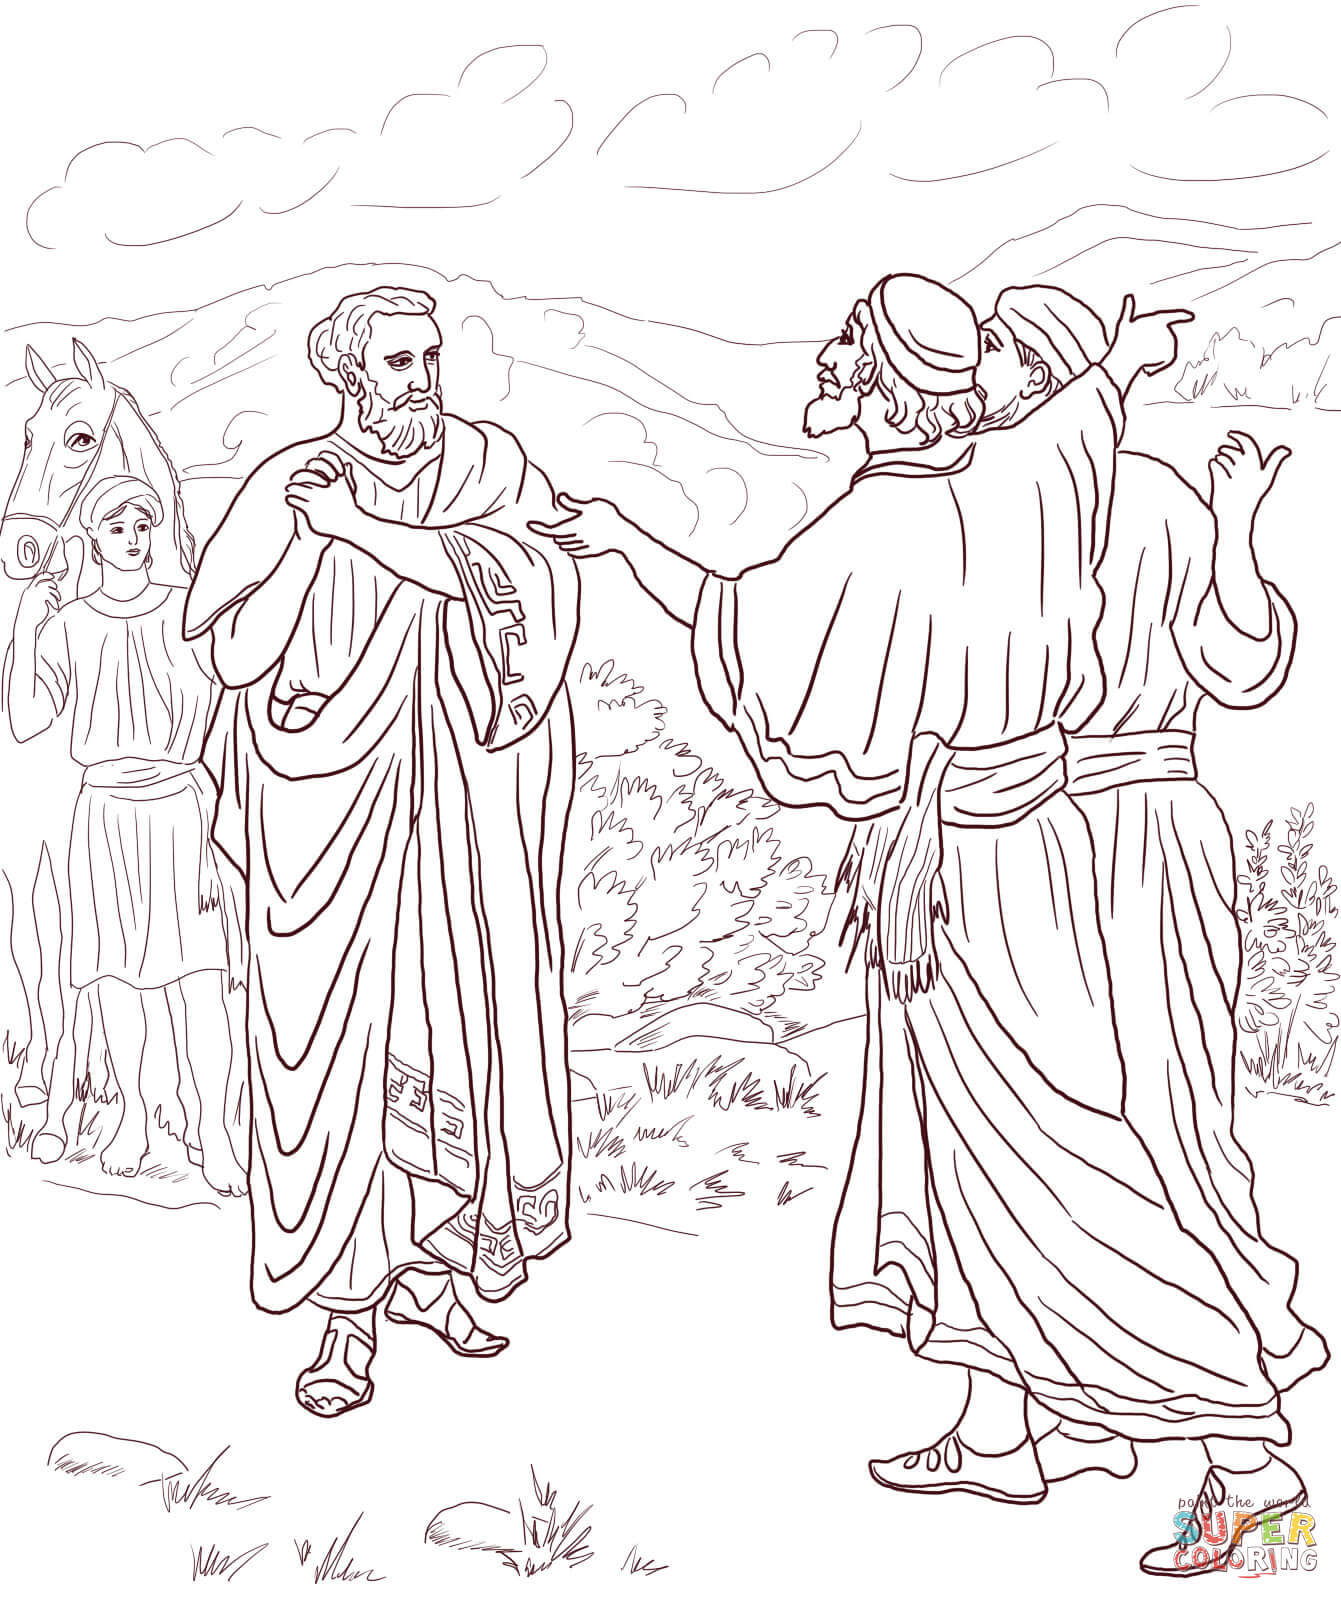 Jesus Healed The Son Of The Nobleman Coloring Page